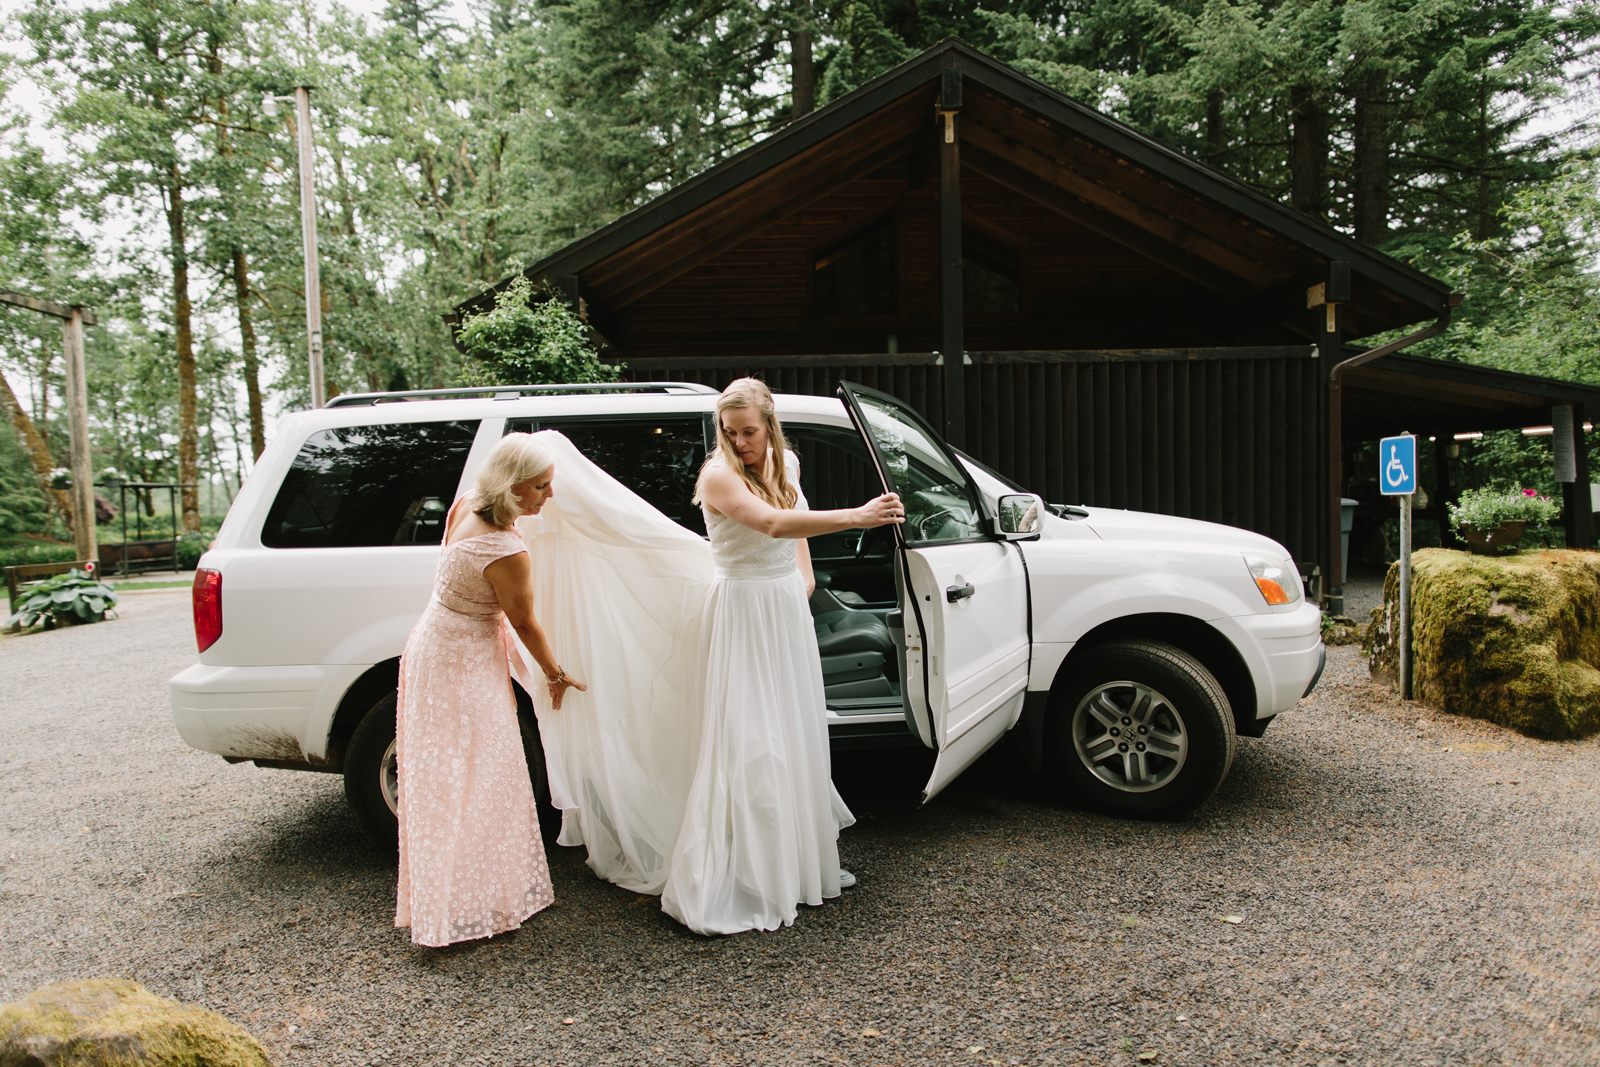 The bride's mother helps with her dress before the ceremony at Bridal Veil Lakes in Corbett, OR